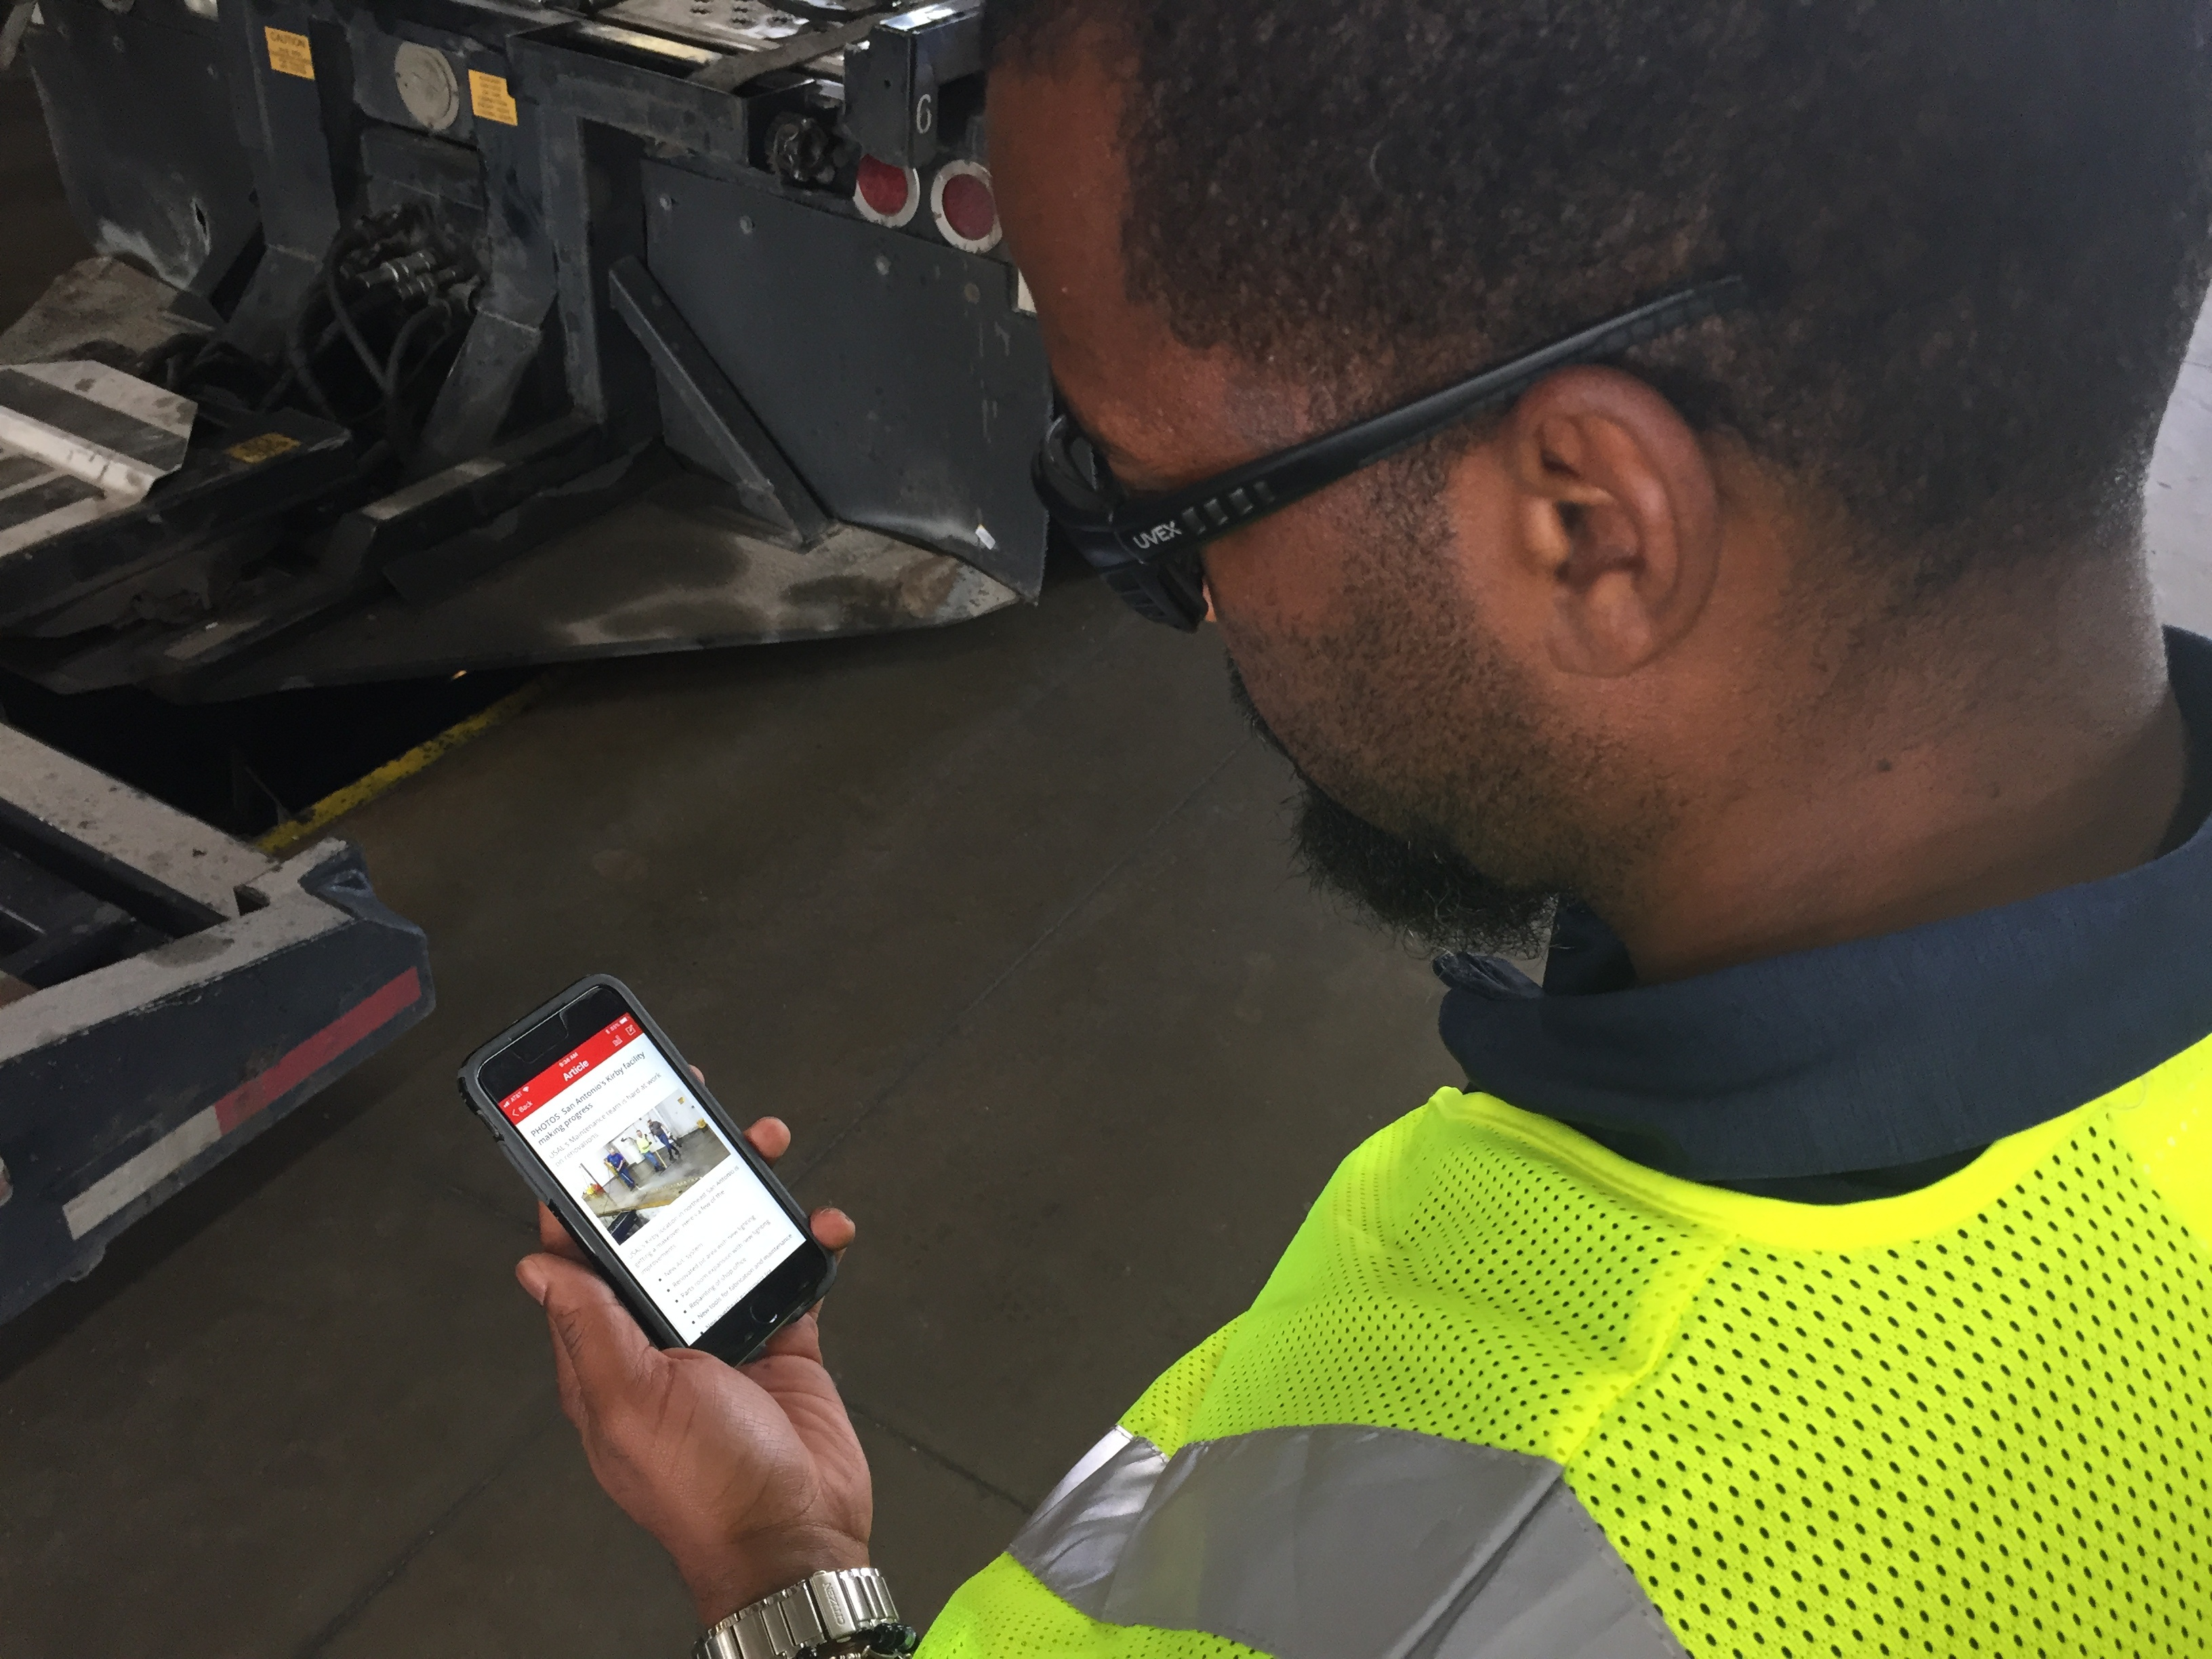 US Autologistics employee app Flipper